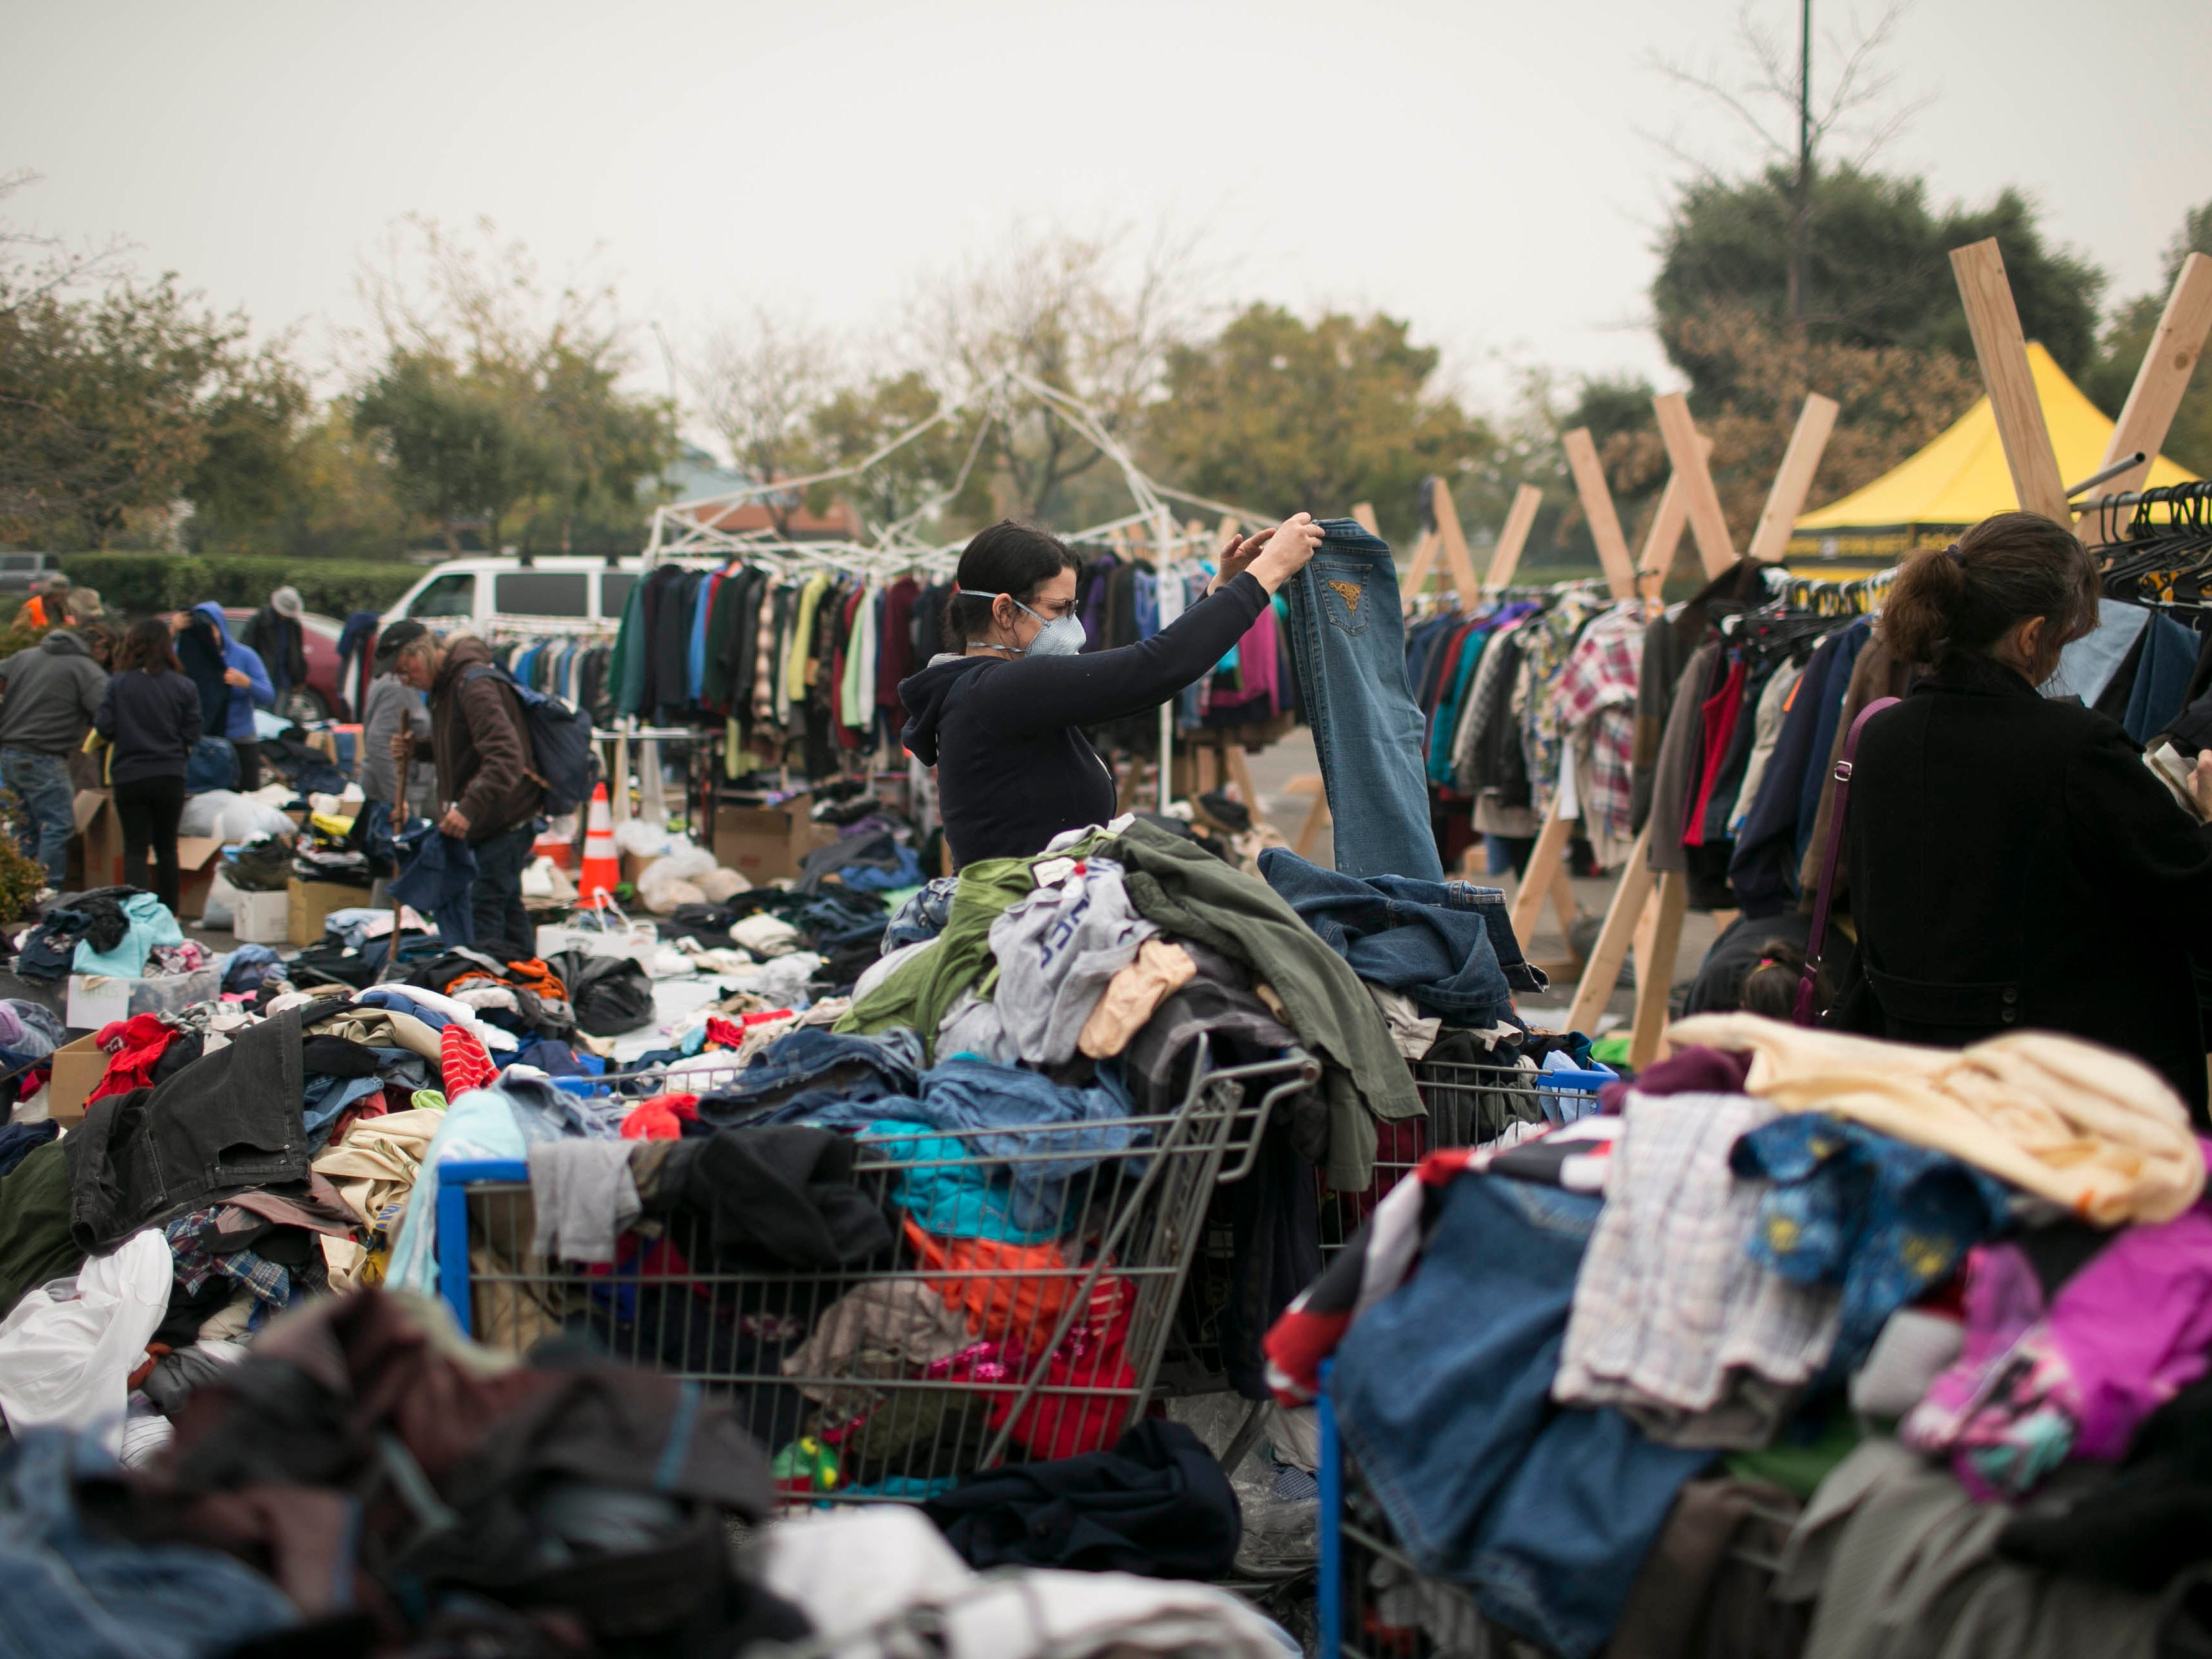 Evacuees from the Camp Fire sort through donated supplies outside a Walmart on Nov. 13, 2018, in Chico, Calif.